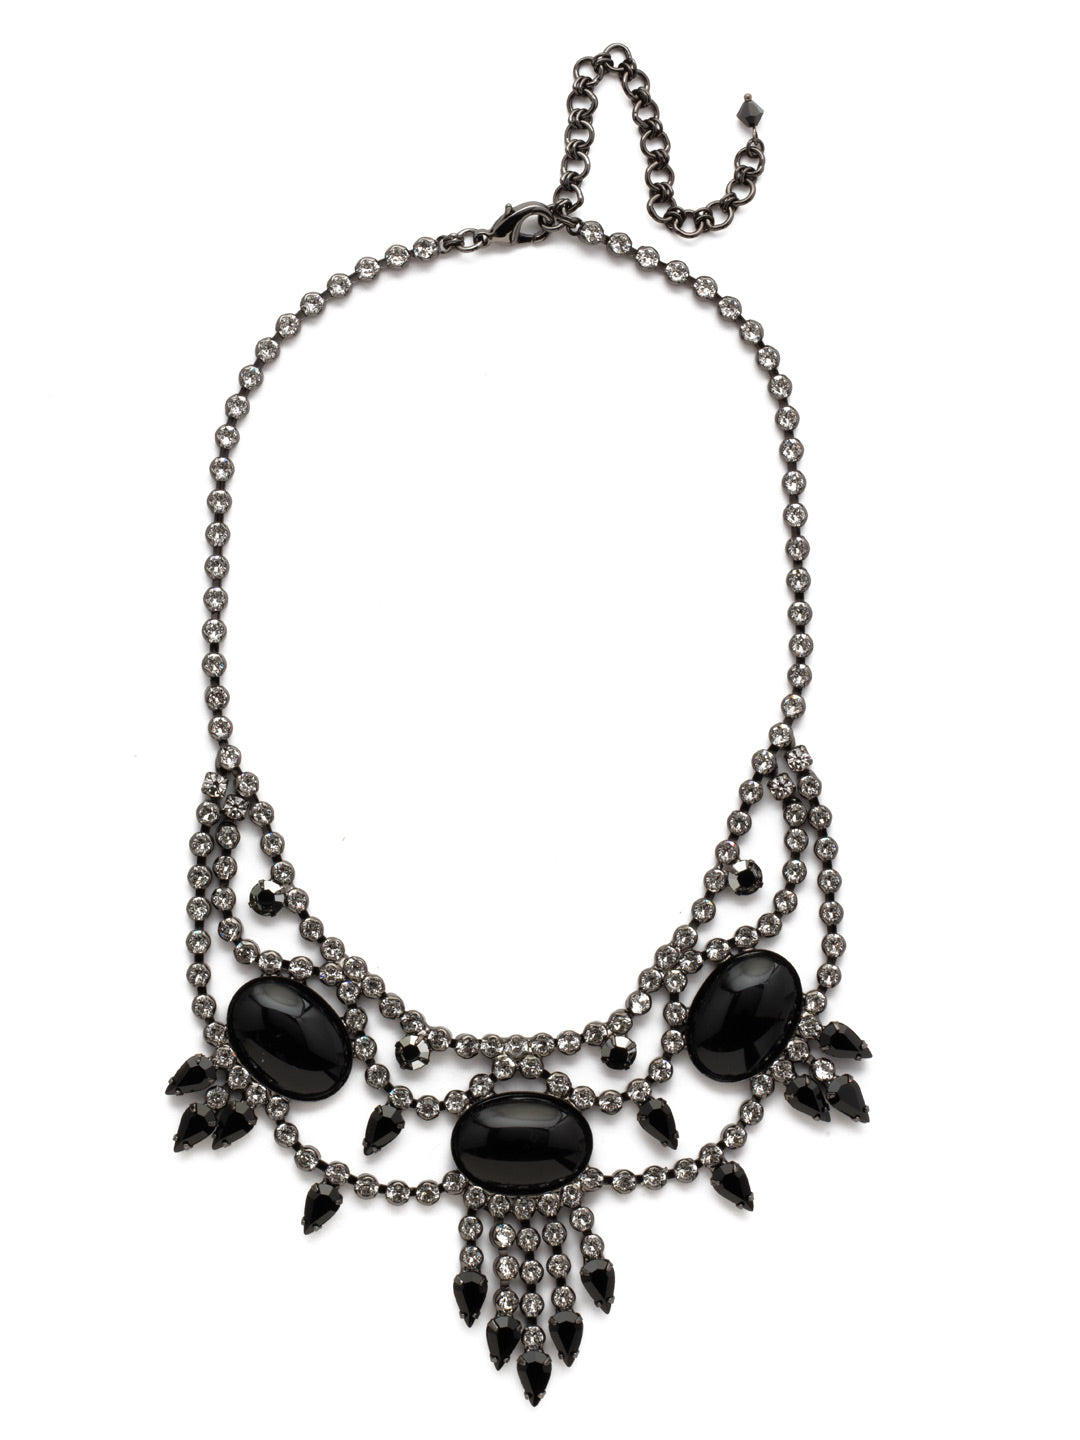 Living on the Fringe Statement Necklace - NCQ19GMMMO